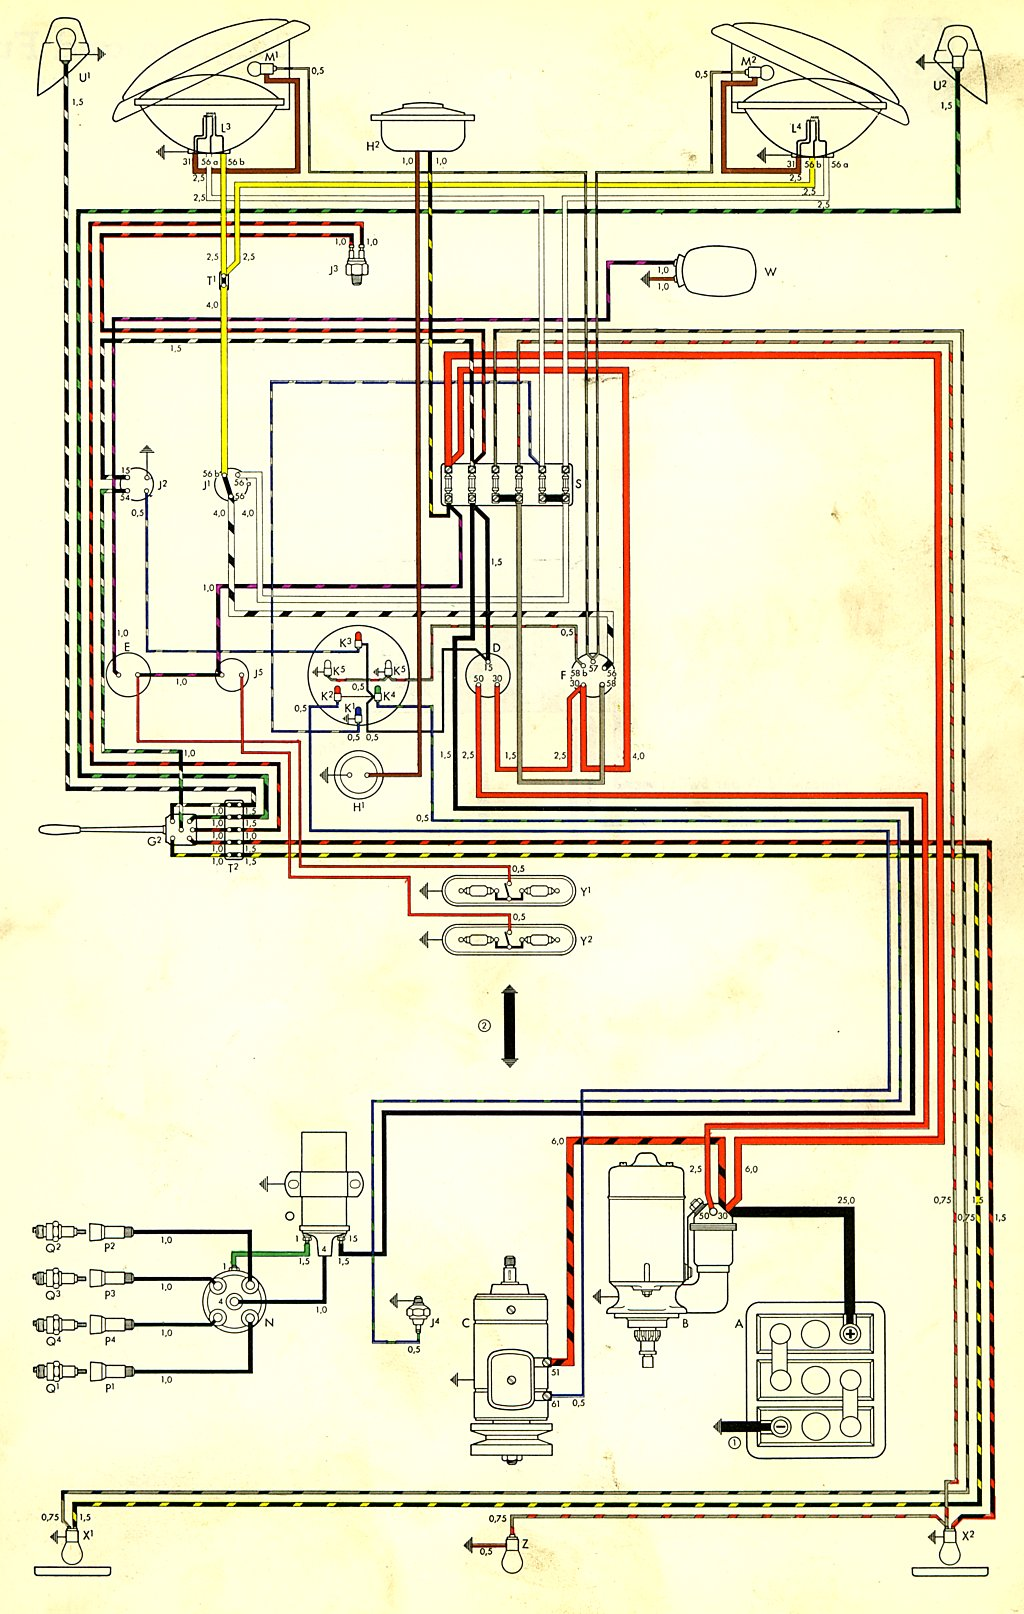 bus_59_USA thesamba com type 2 wiring diagrams Electrical Wiring Diagrams at reclaimingppi.co